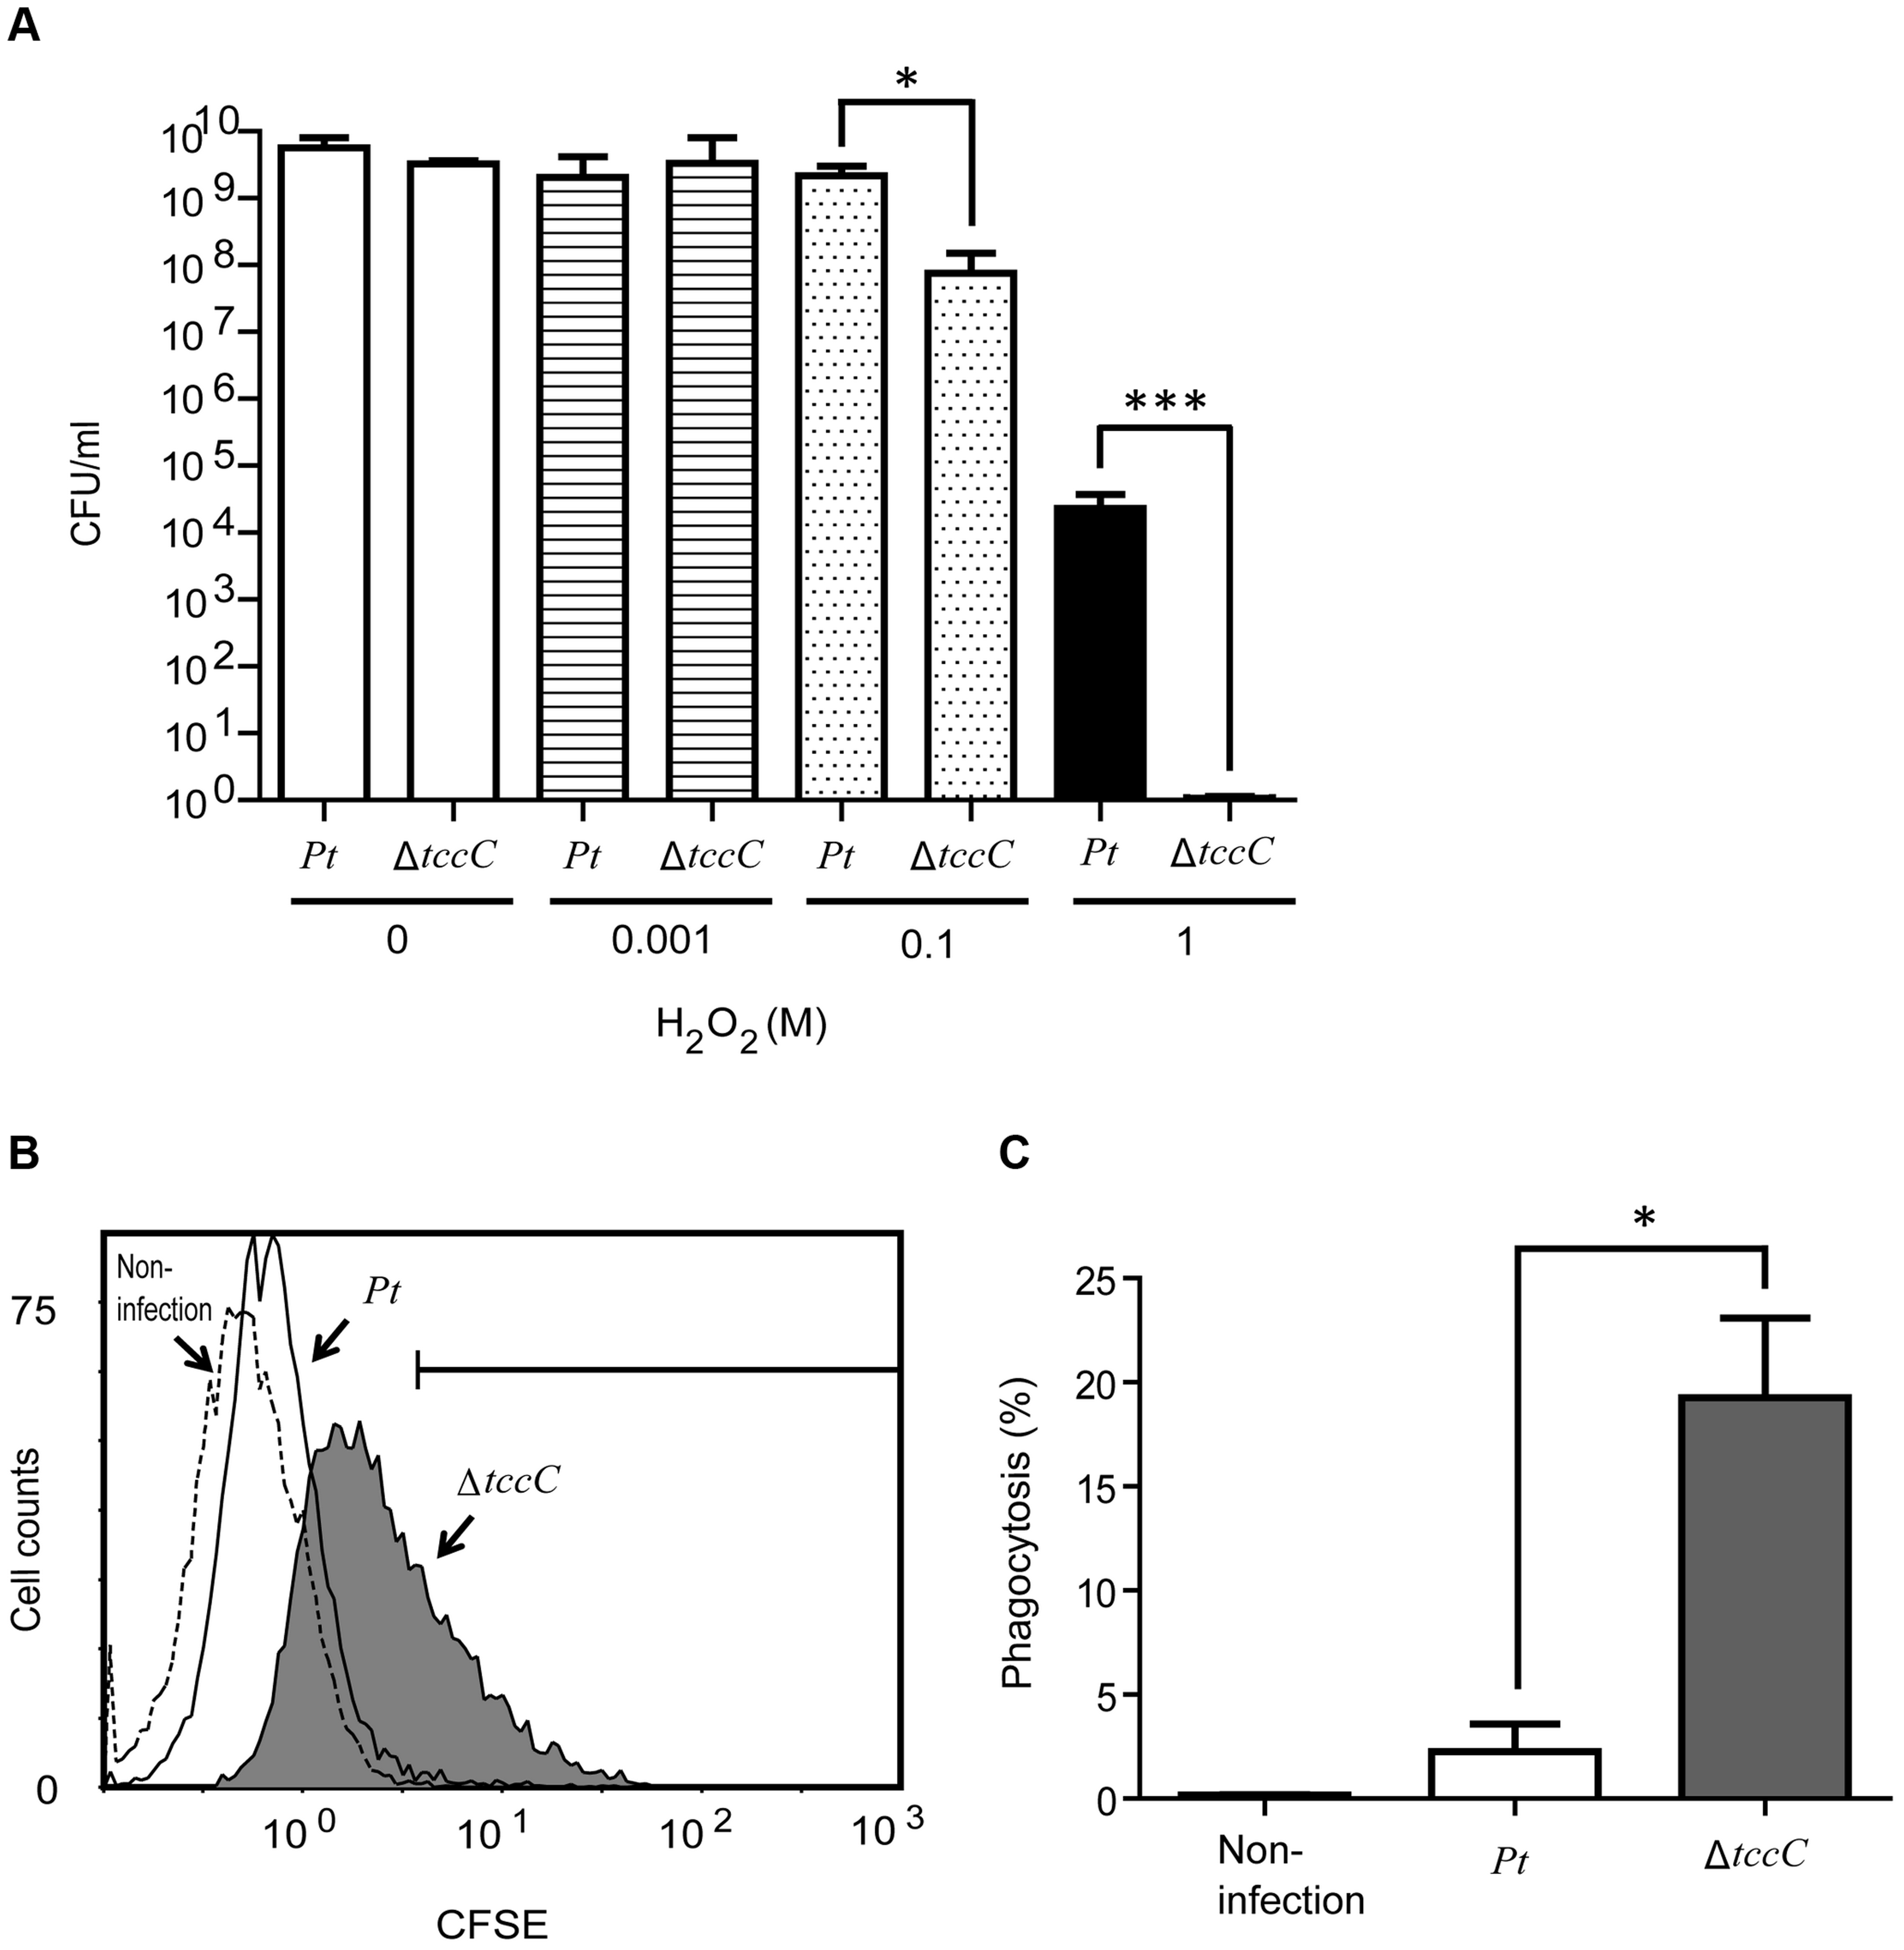 TccC contributes to increases in oxidant stress defense and inhibits phagocytosis.